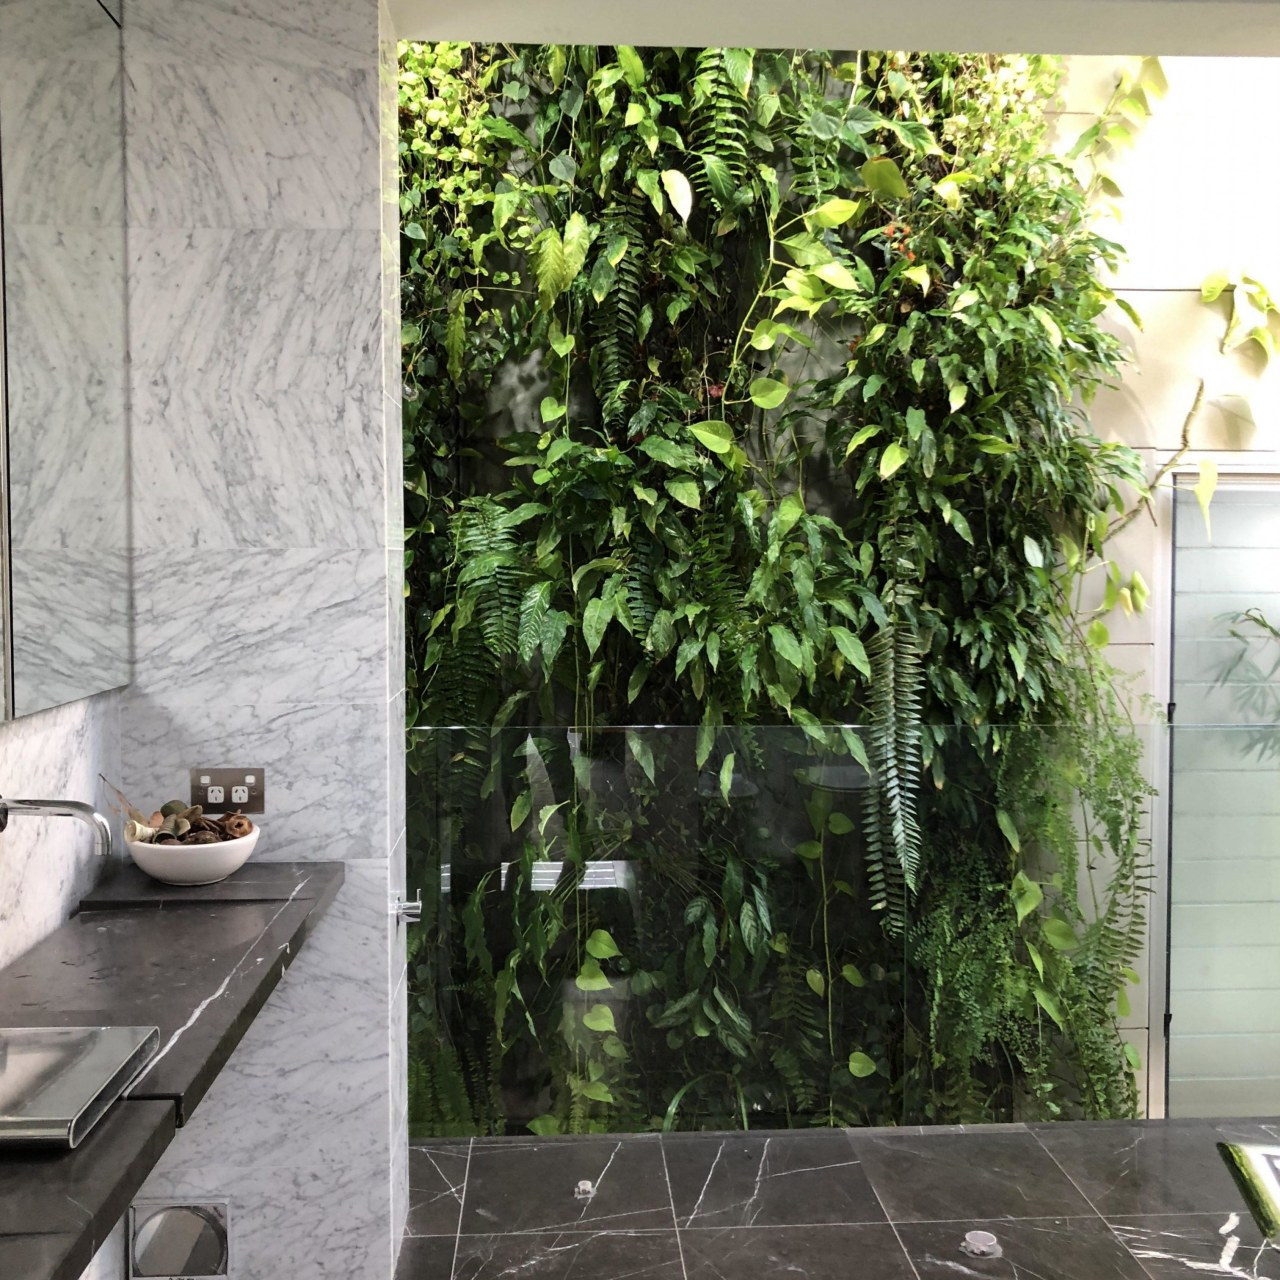 Bringing in a green plant – or several flowerpot, houseplant, interior design, leaf, plant, tree, wall, gray